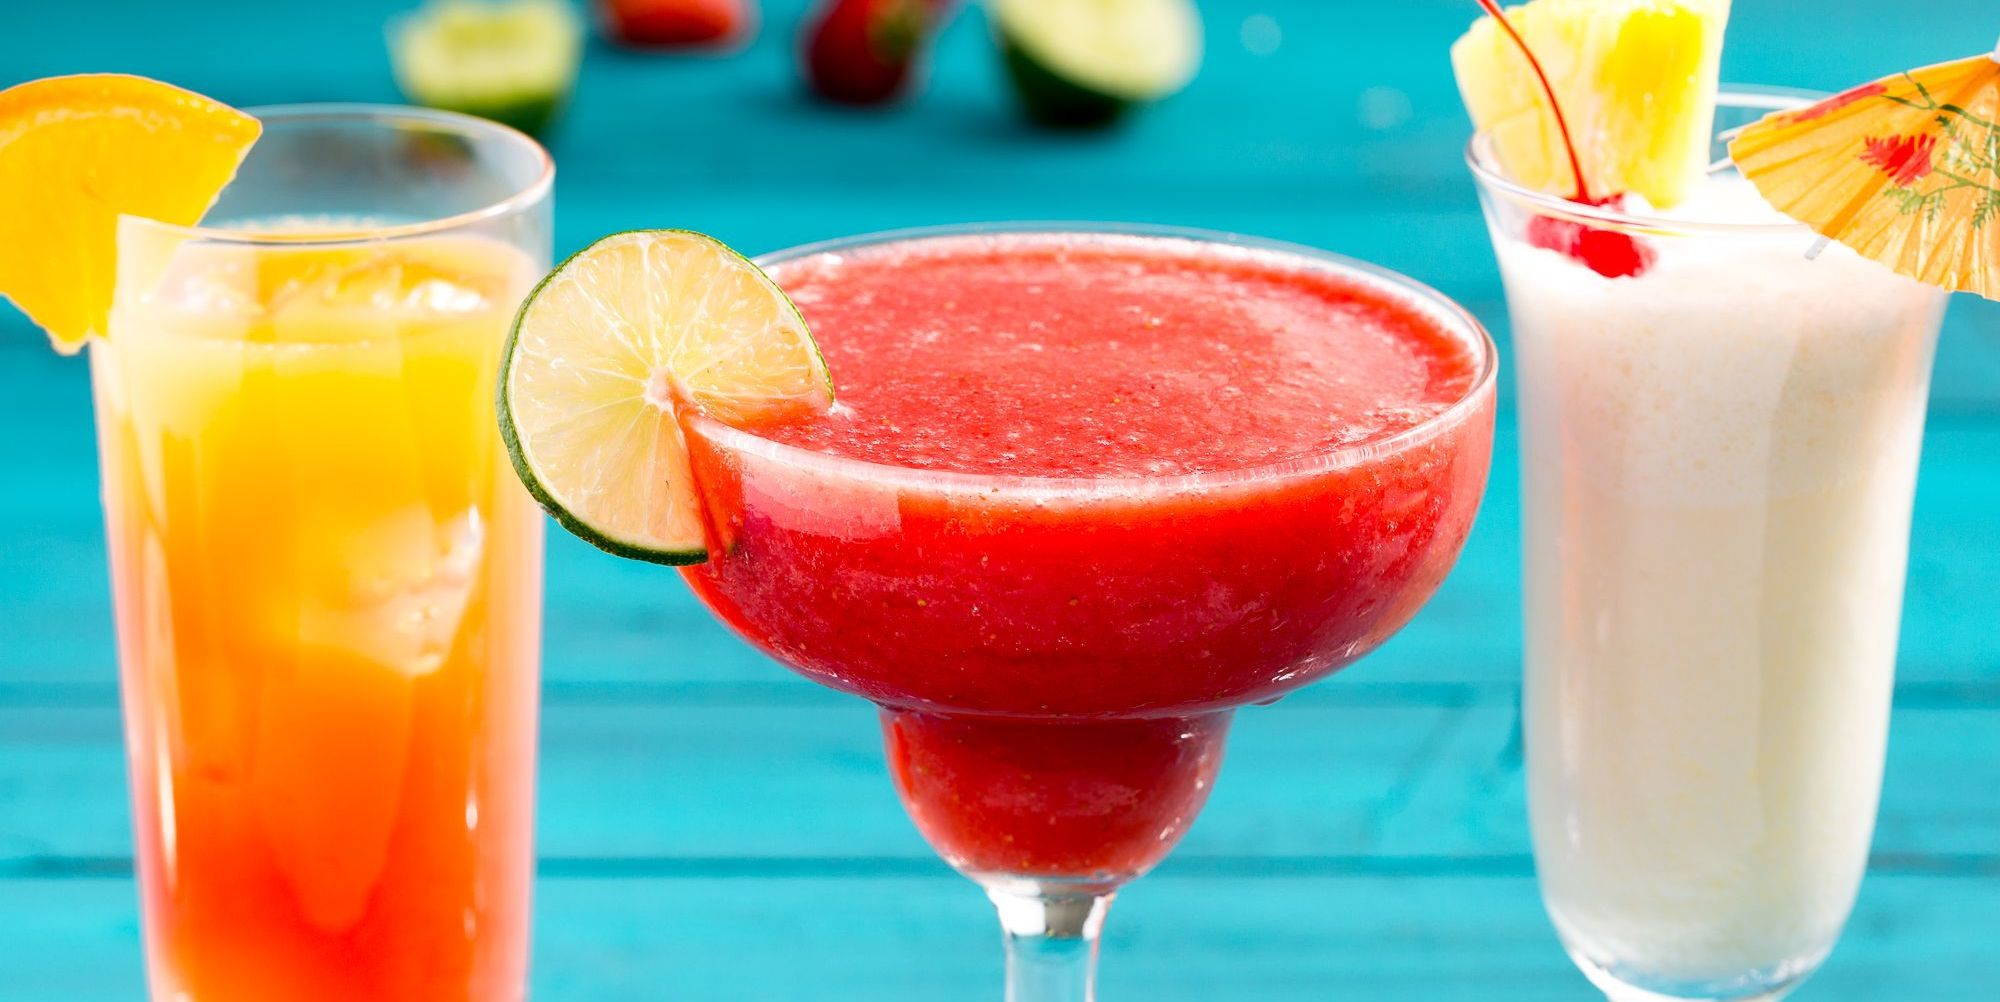 10 Rum Cocktails That Taste Like A Tropical Vacation